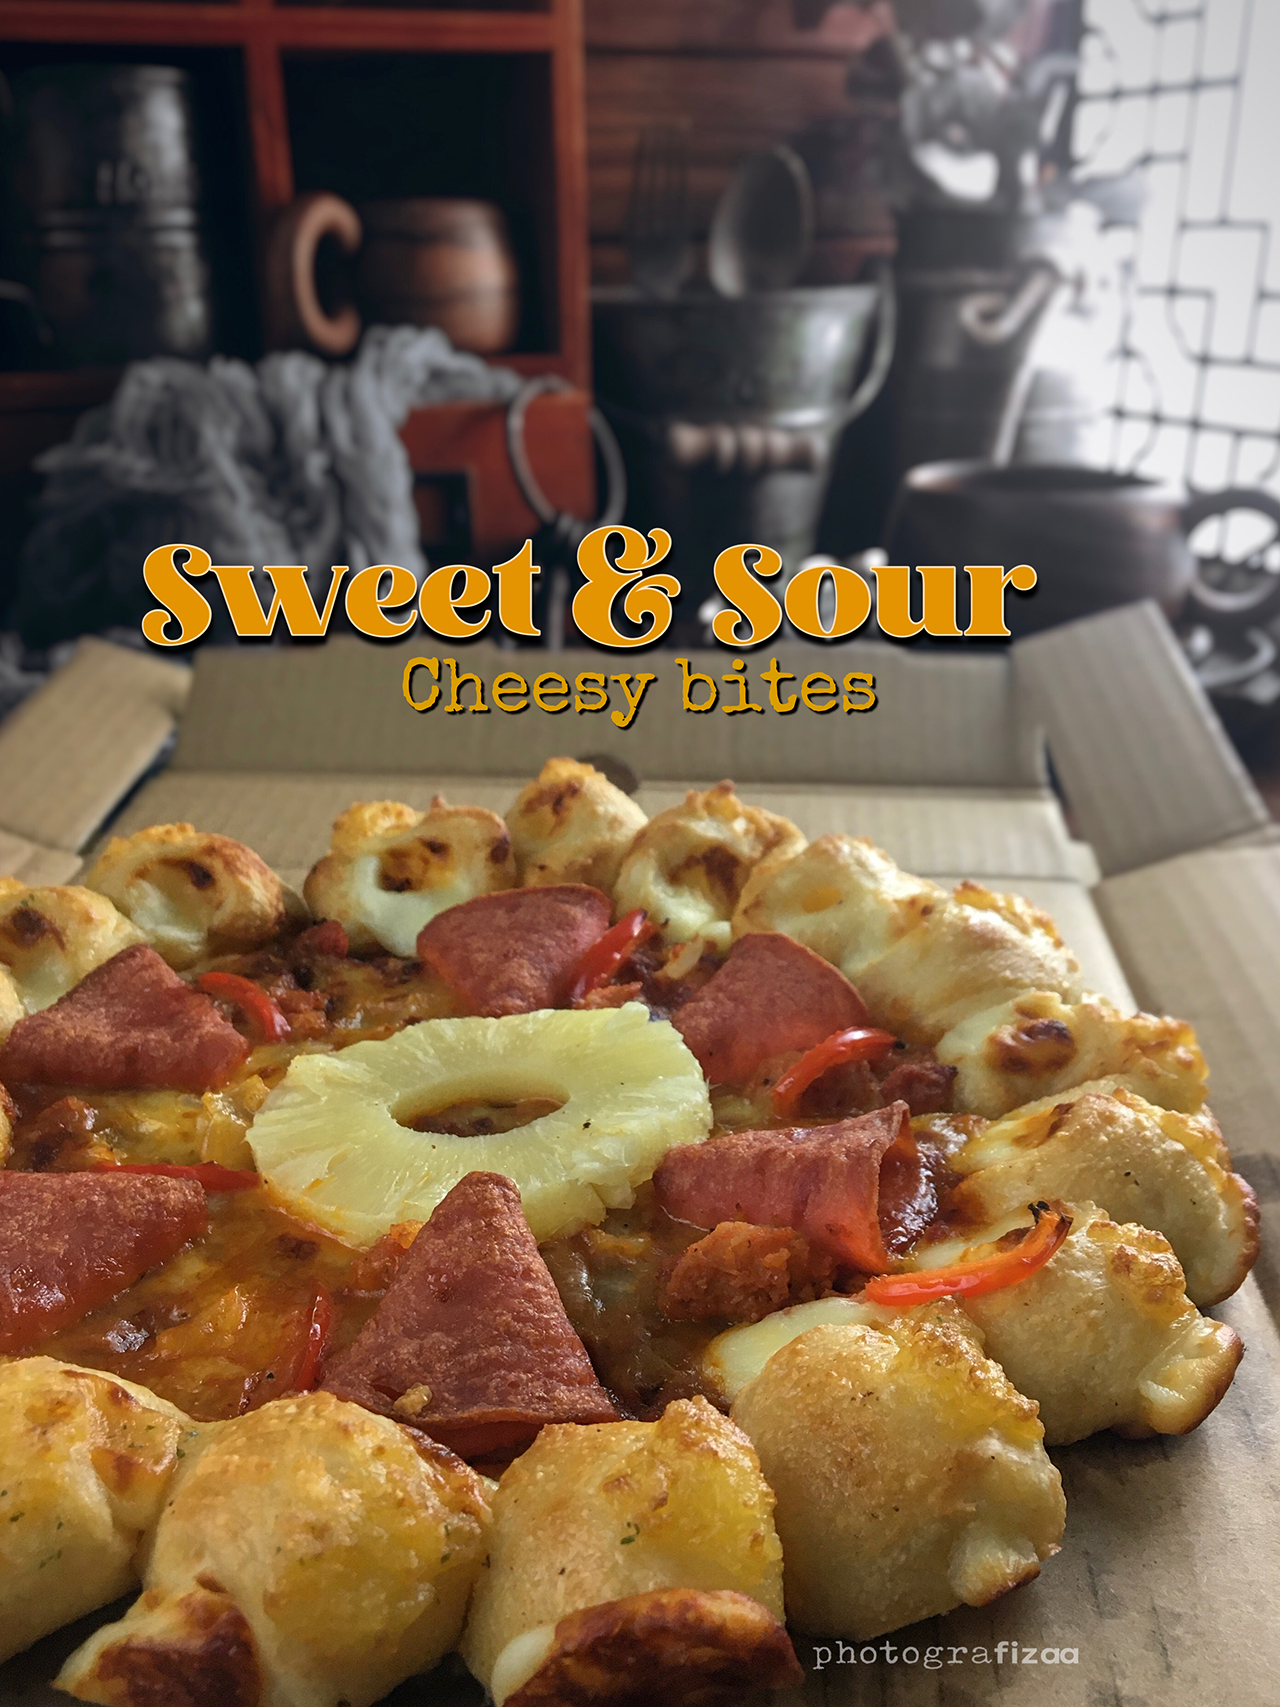 Sweet & Sour Cheesy Bites